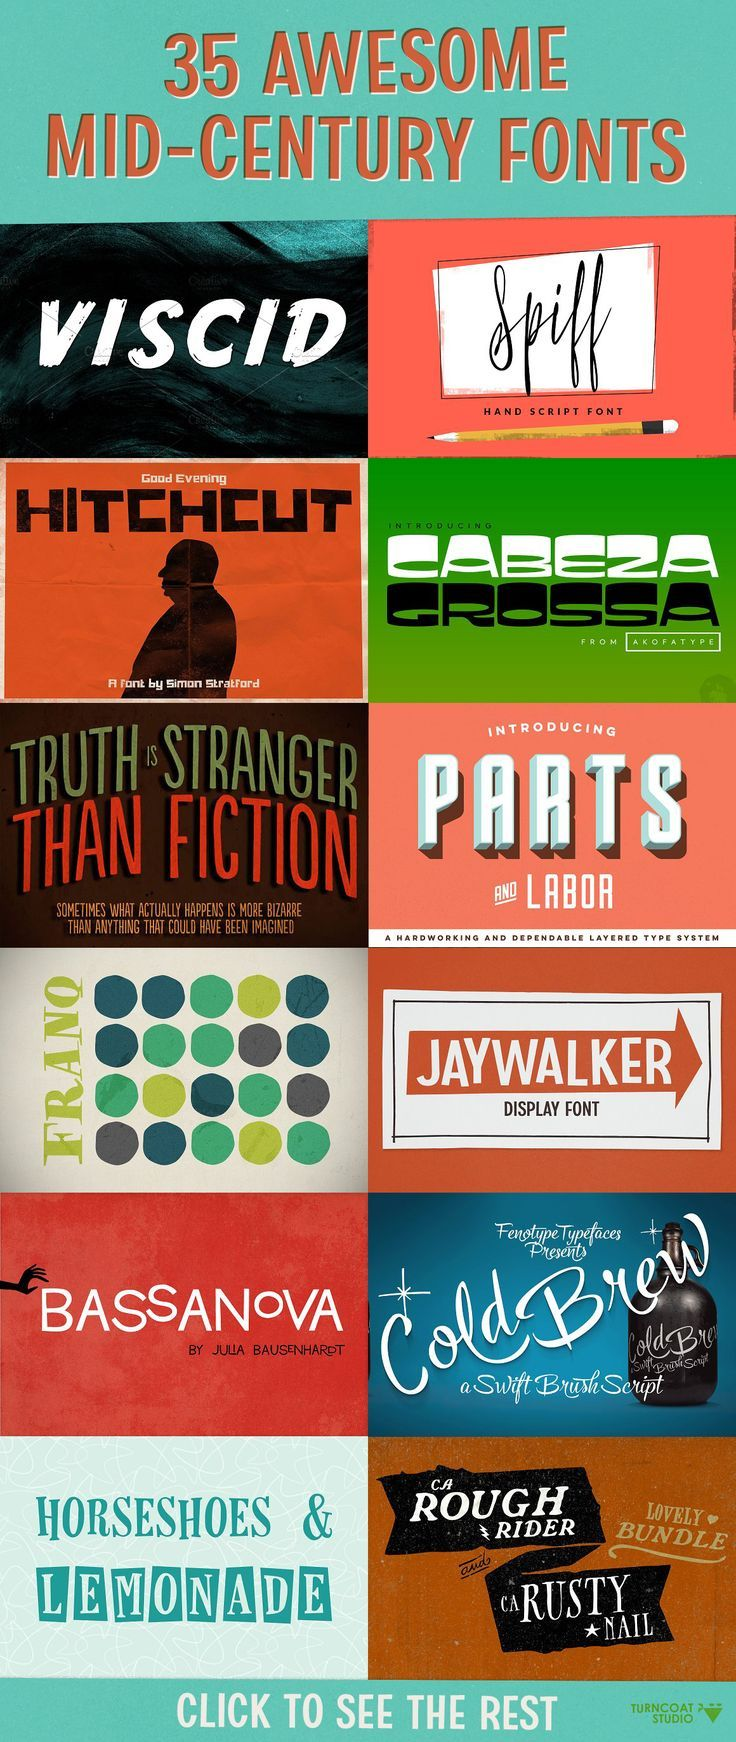 35 awesome mid century fonts some of my favorite typefaces that 35 awesome mid century fonts some of my favorite typefaces that will add that mid century vibe to your design projects script serif sans hand ccuart Choice Image